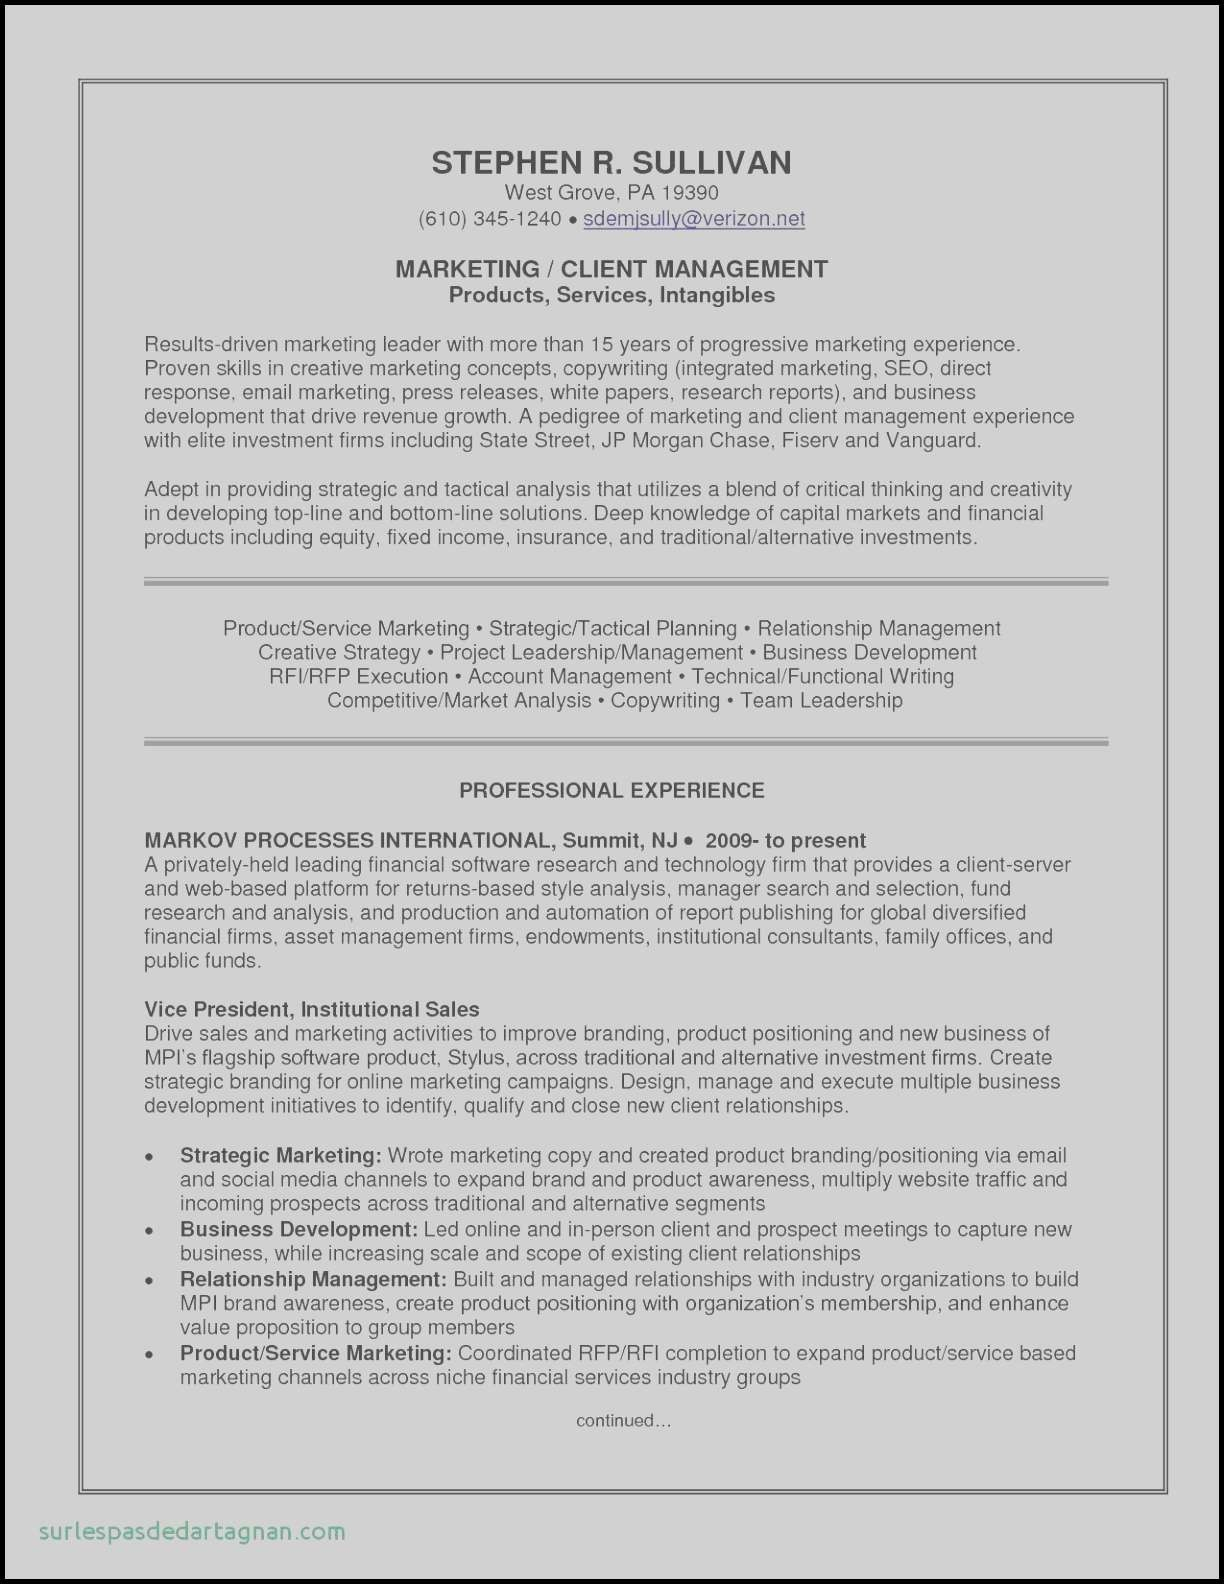 Applicant Tracking System Resume - 25 Beautiful Applicant Tracking System Resume